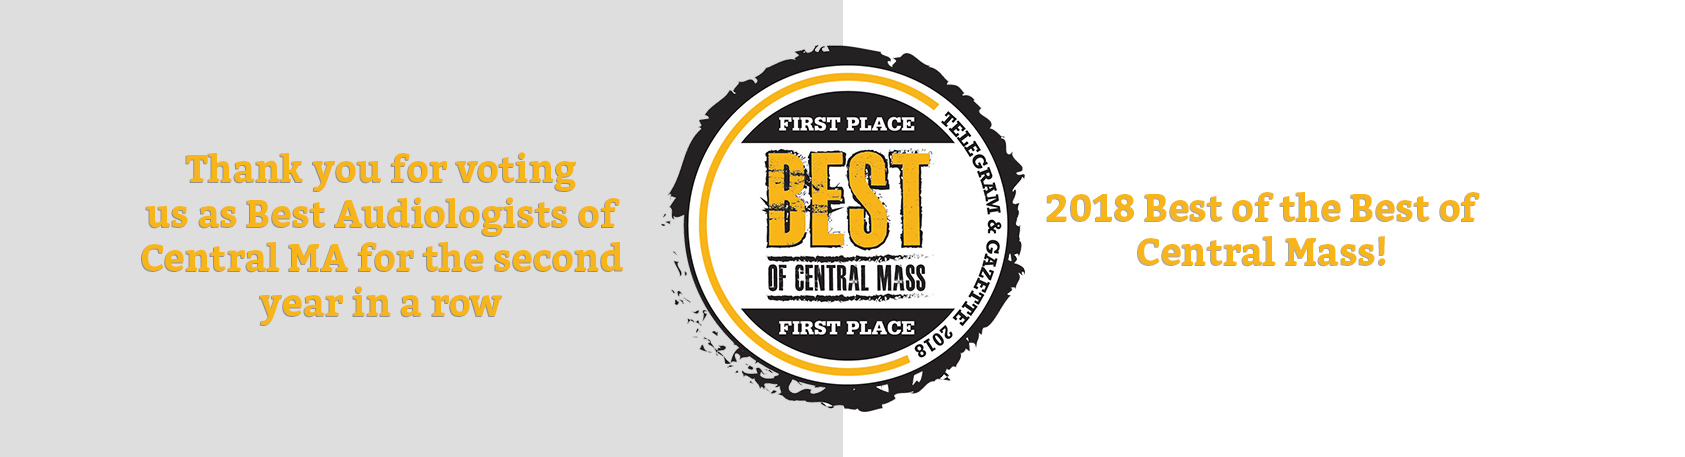 Best of Central Mass 2018 - Worcester, MA